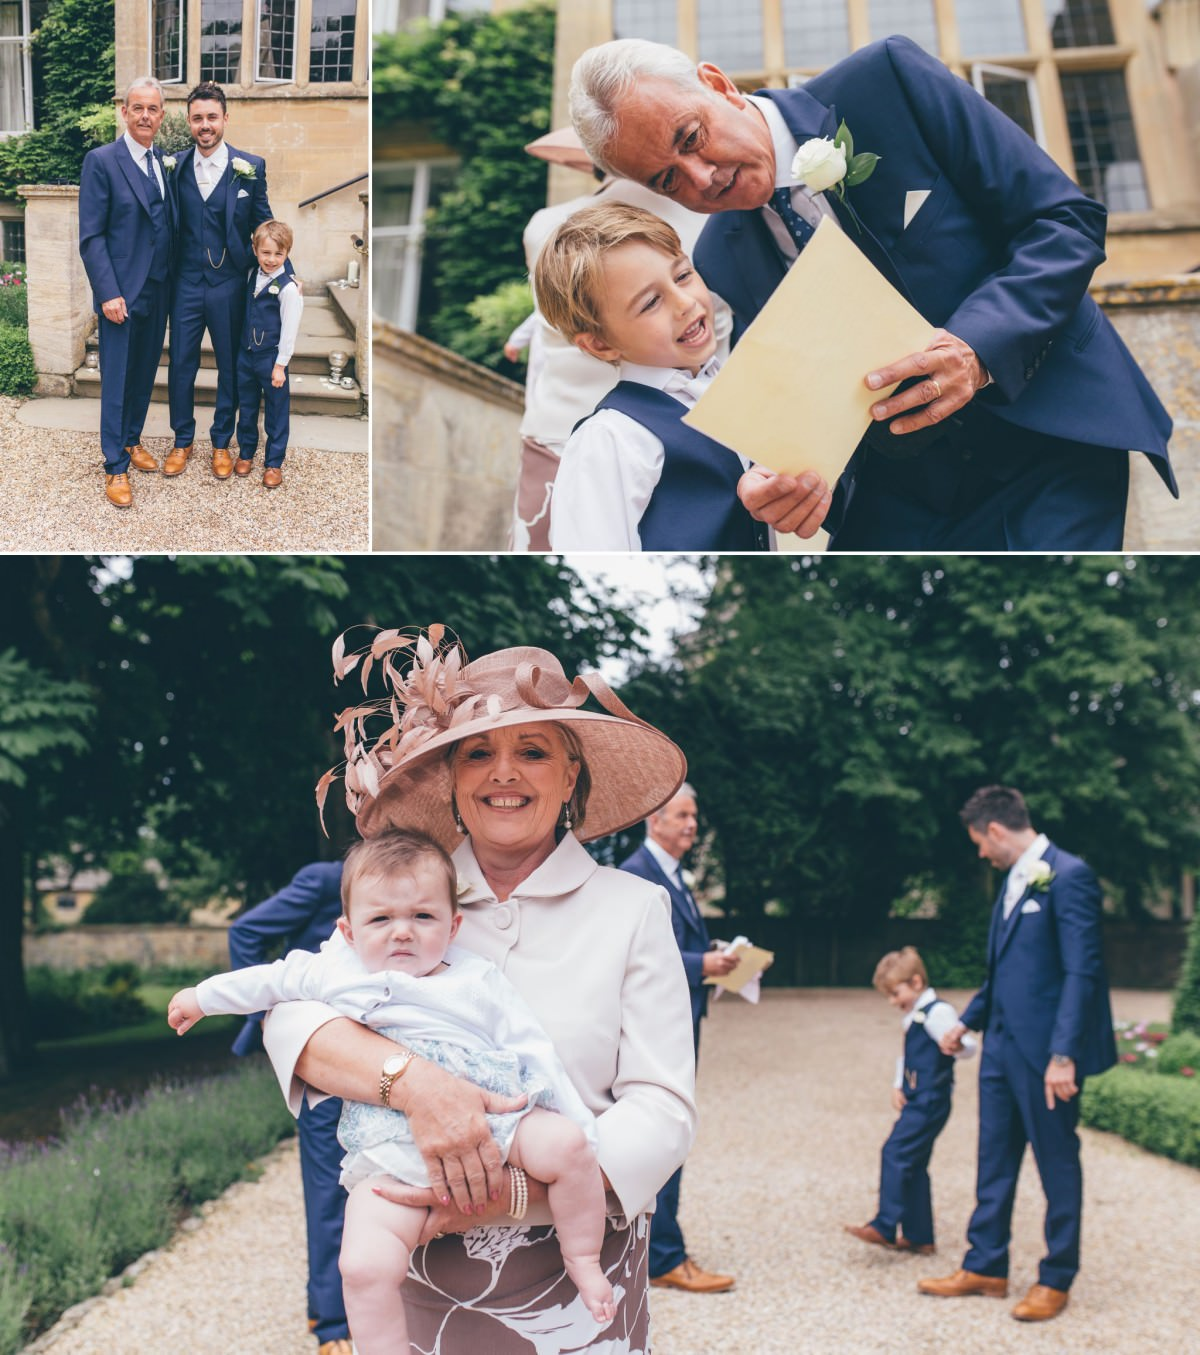 welsh_wedding_photographer_rachel_lambert_photography_lower_slaughter_manor_house_cotswolds_harriet_dean_ 7